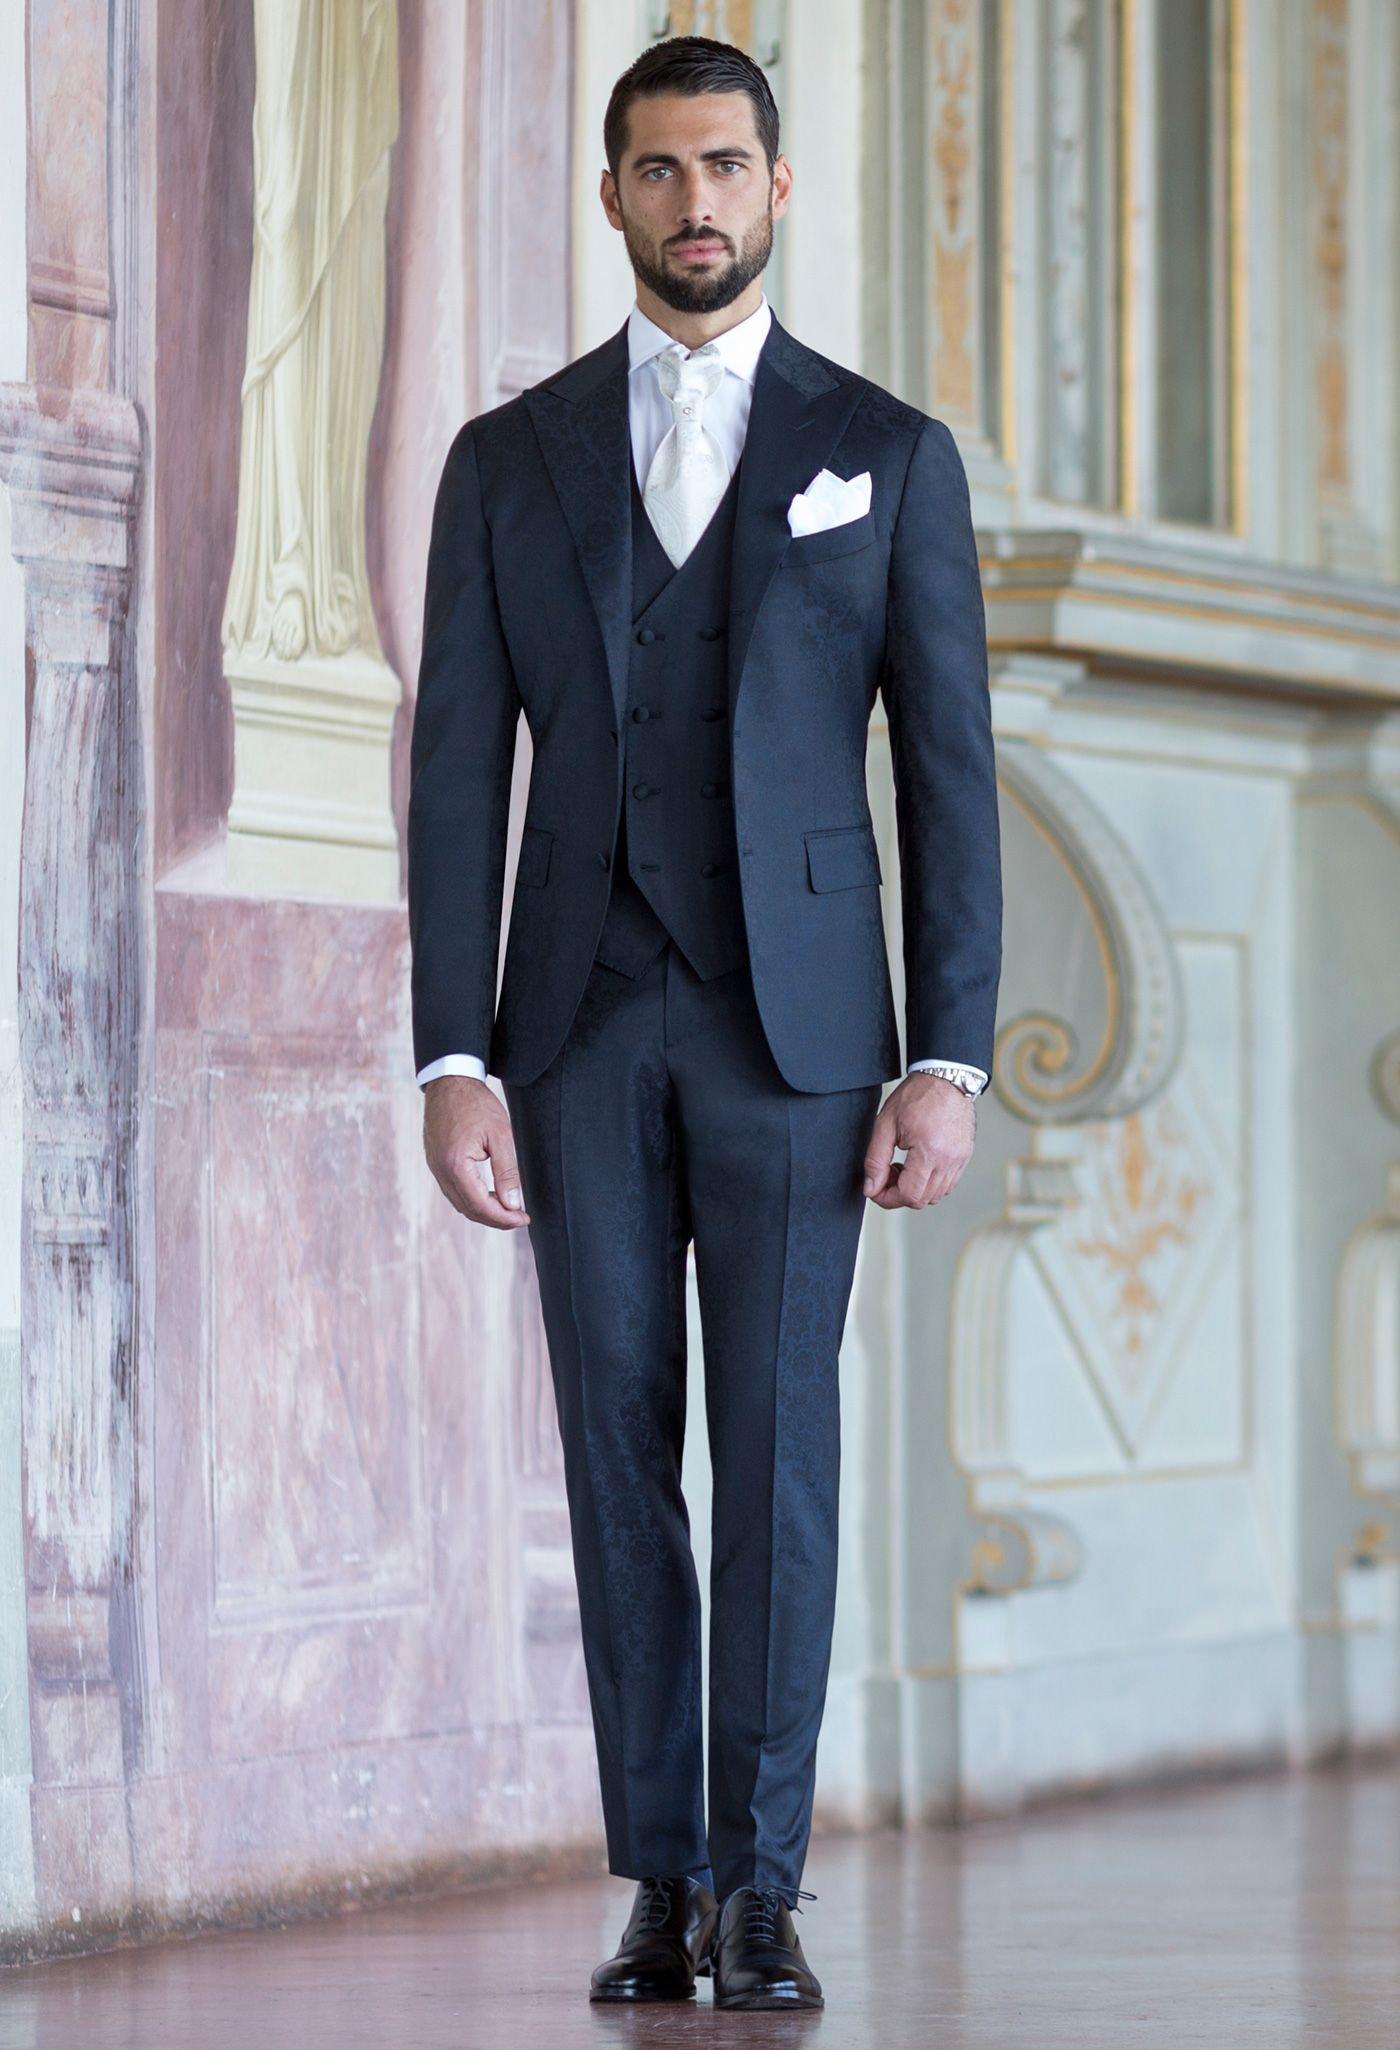 Blue Wedding Suit By Sartoria Rossi Milano One Of The Best Cut Jackets I Ever Saw Style Dress Suits Mens Fashion E Black Suit Men